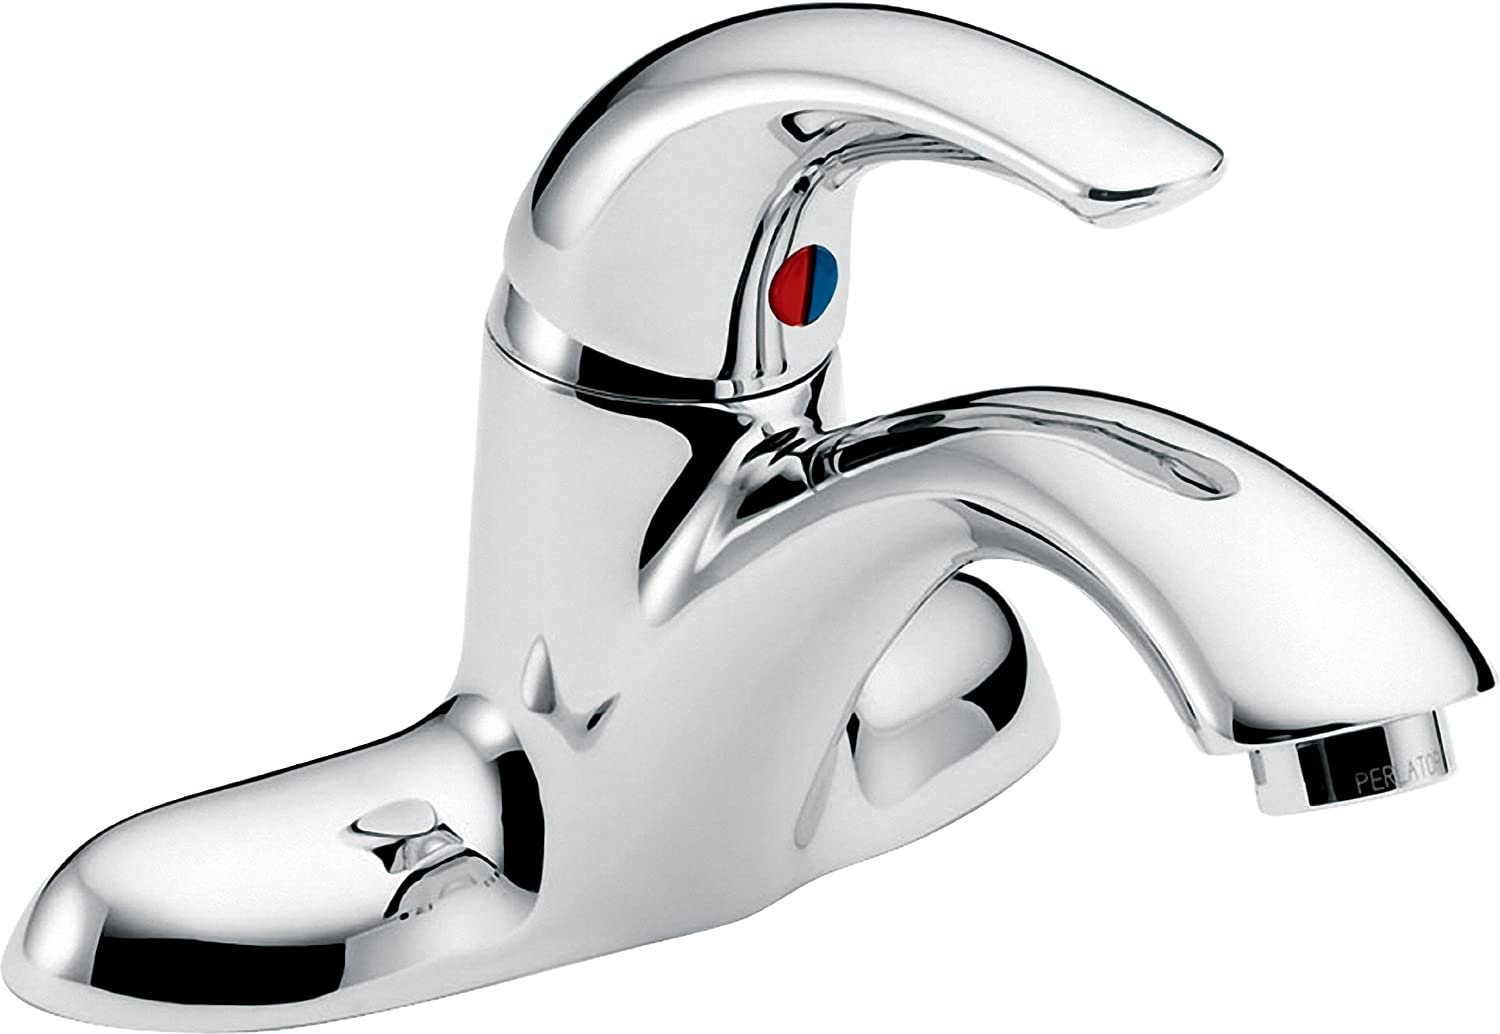 Delta Faucet 22C101 22T Less Pop Up Single Handle Centerset Bathroom Faucet,  Chrome   Touch On Bathroom Sink Faucets   Amazon.com